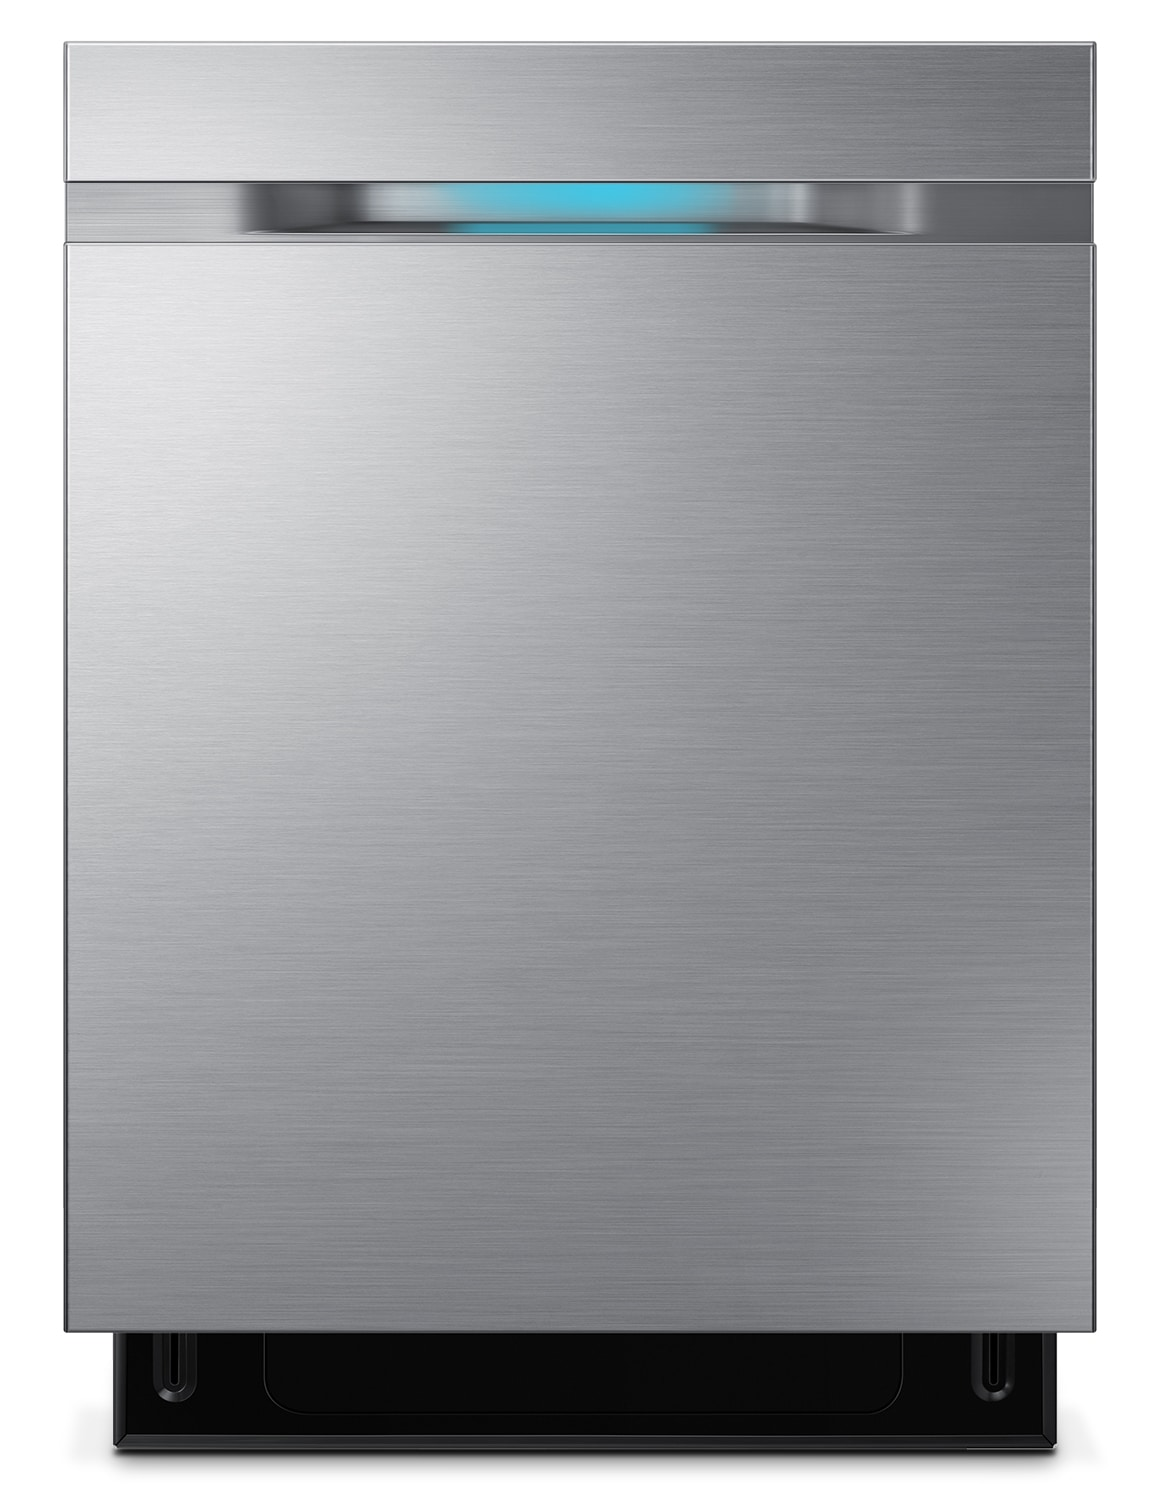 "Clean-Up - Samsung Stainless Steel 24"" Dishwasher - DW80J9945US/AC"